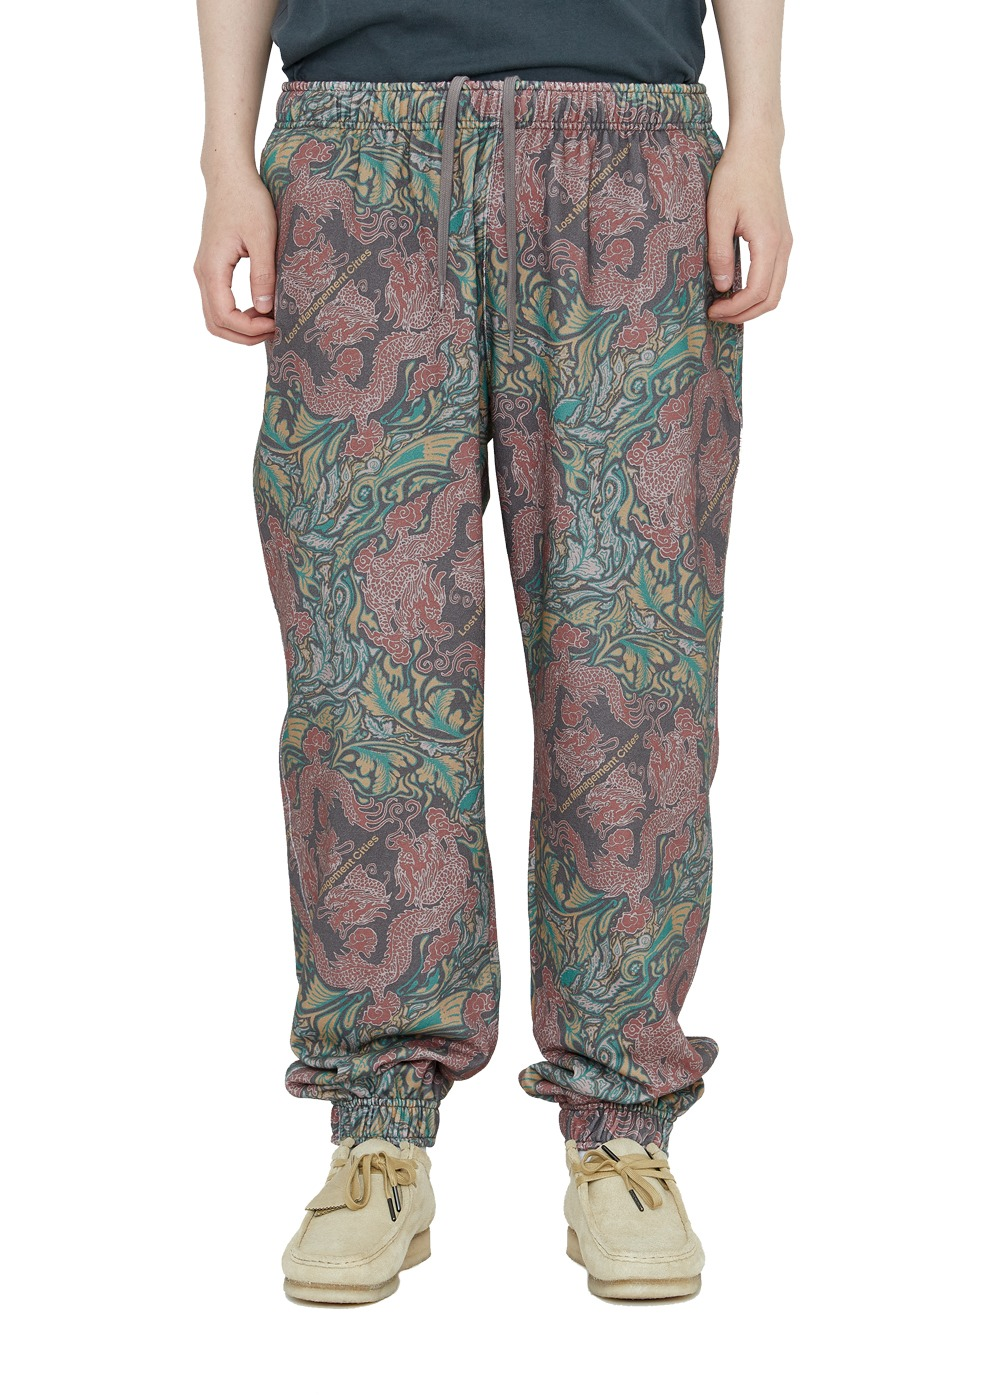 LMC DRAGON SWEATPANTS burgundy